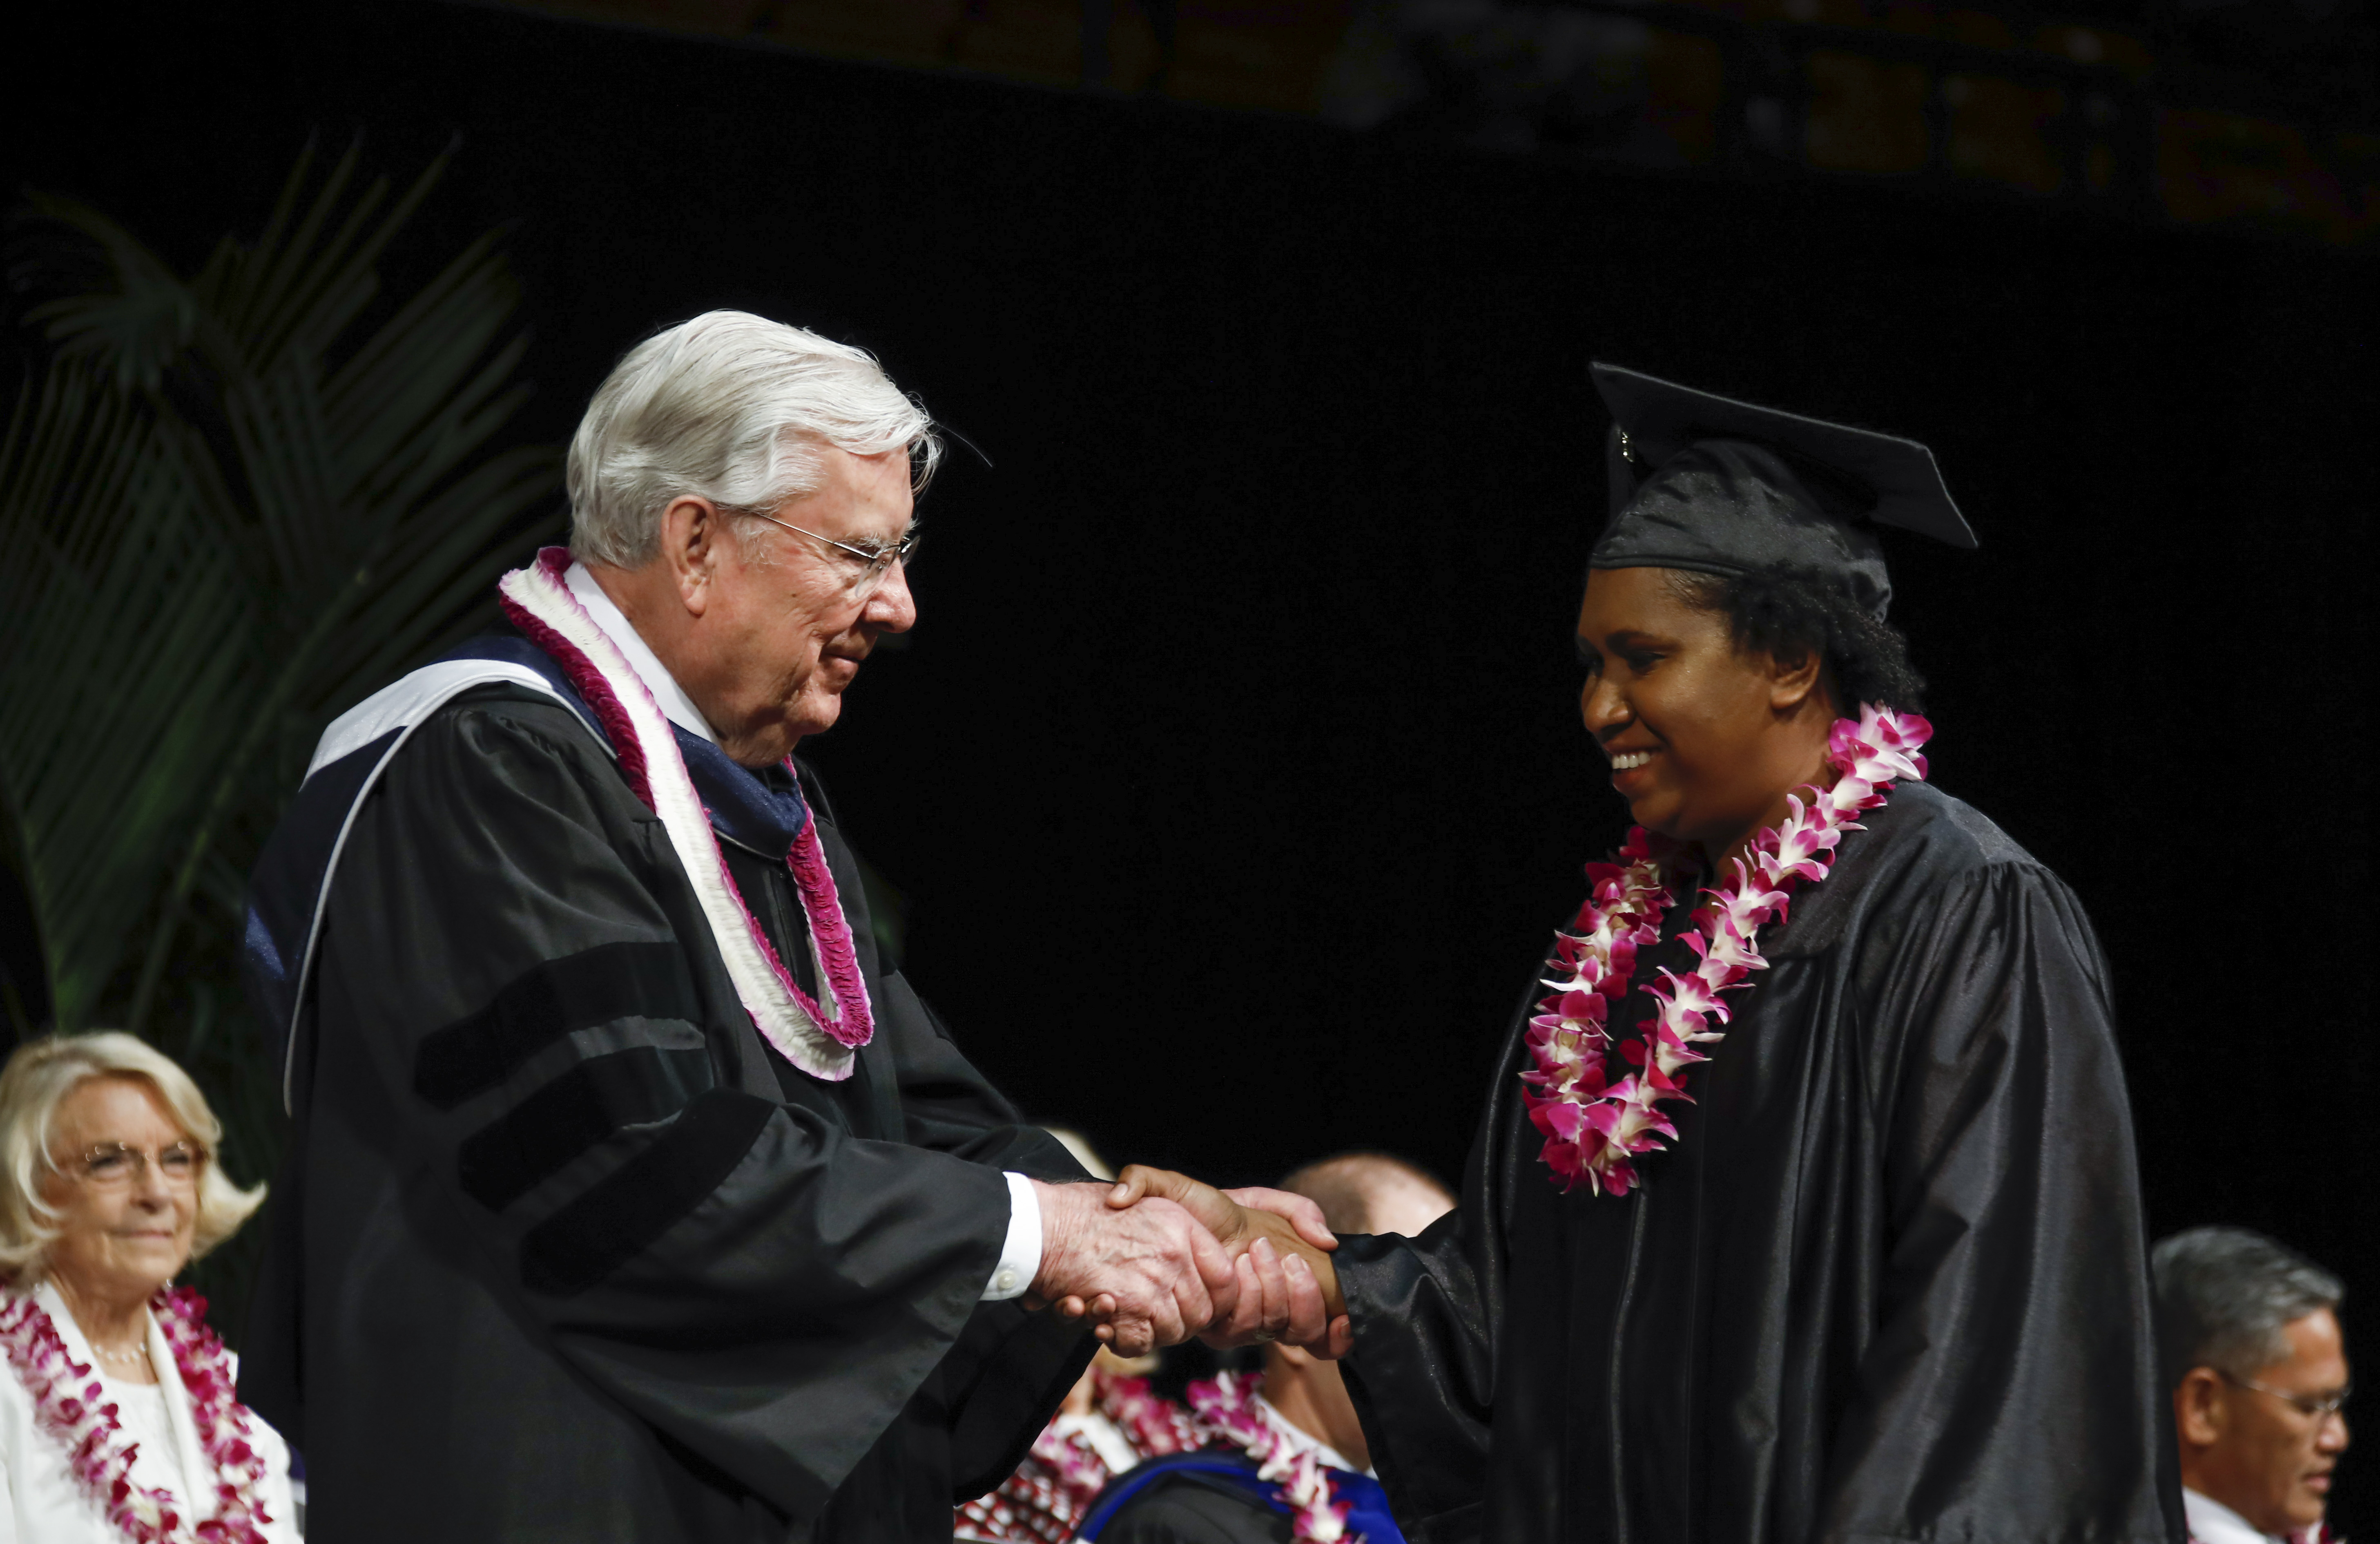 President M. Russell Ballard shakes the hand of a student during the BYU-Hawaii Winter Semester Commencement Ceremony on April 20, 2019.